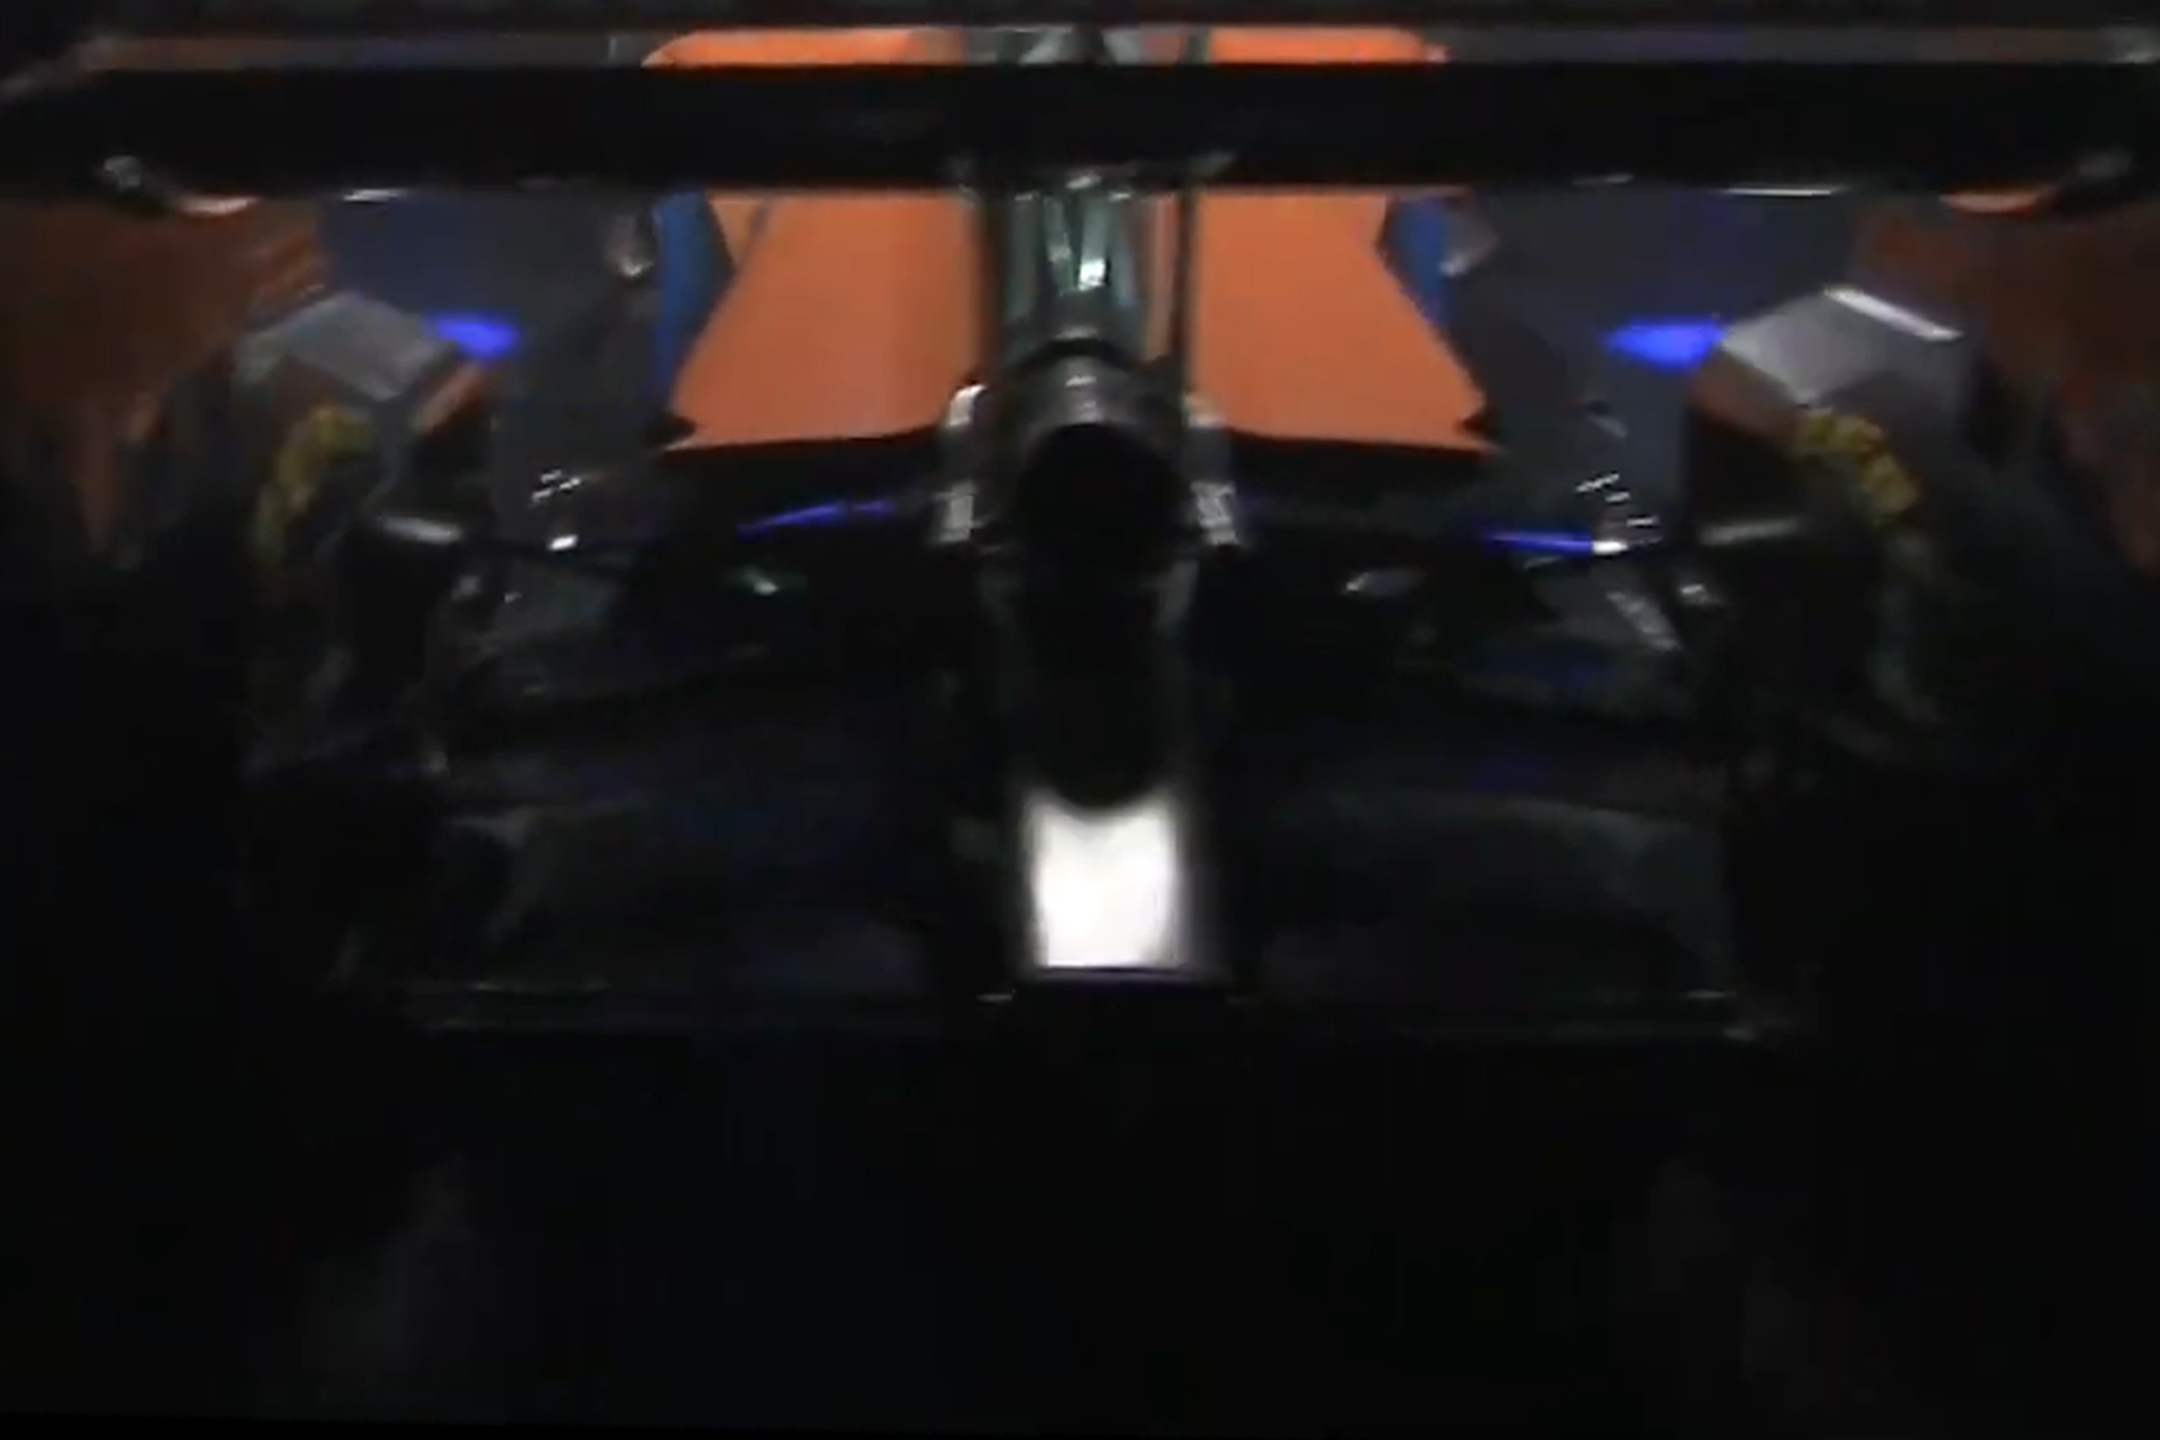 F1 - McLaren Racing - MCL35 - 2020 - Power Unit - Renault E-Tech 20 - 35A engine - McLaren Applied Technologies - rear-preview